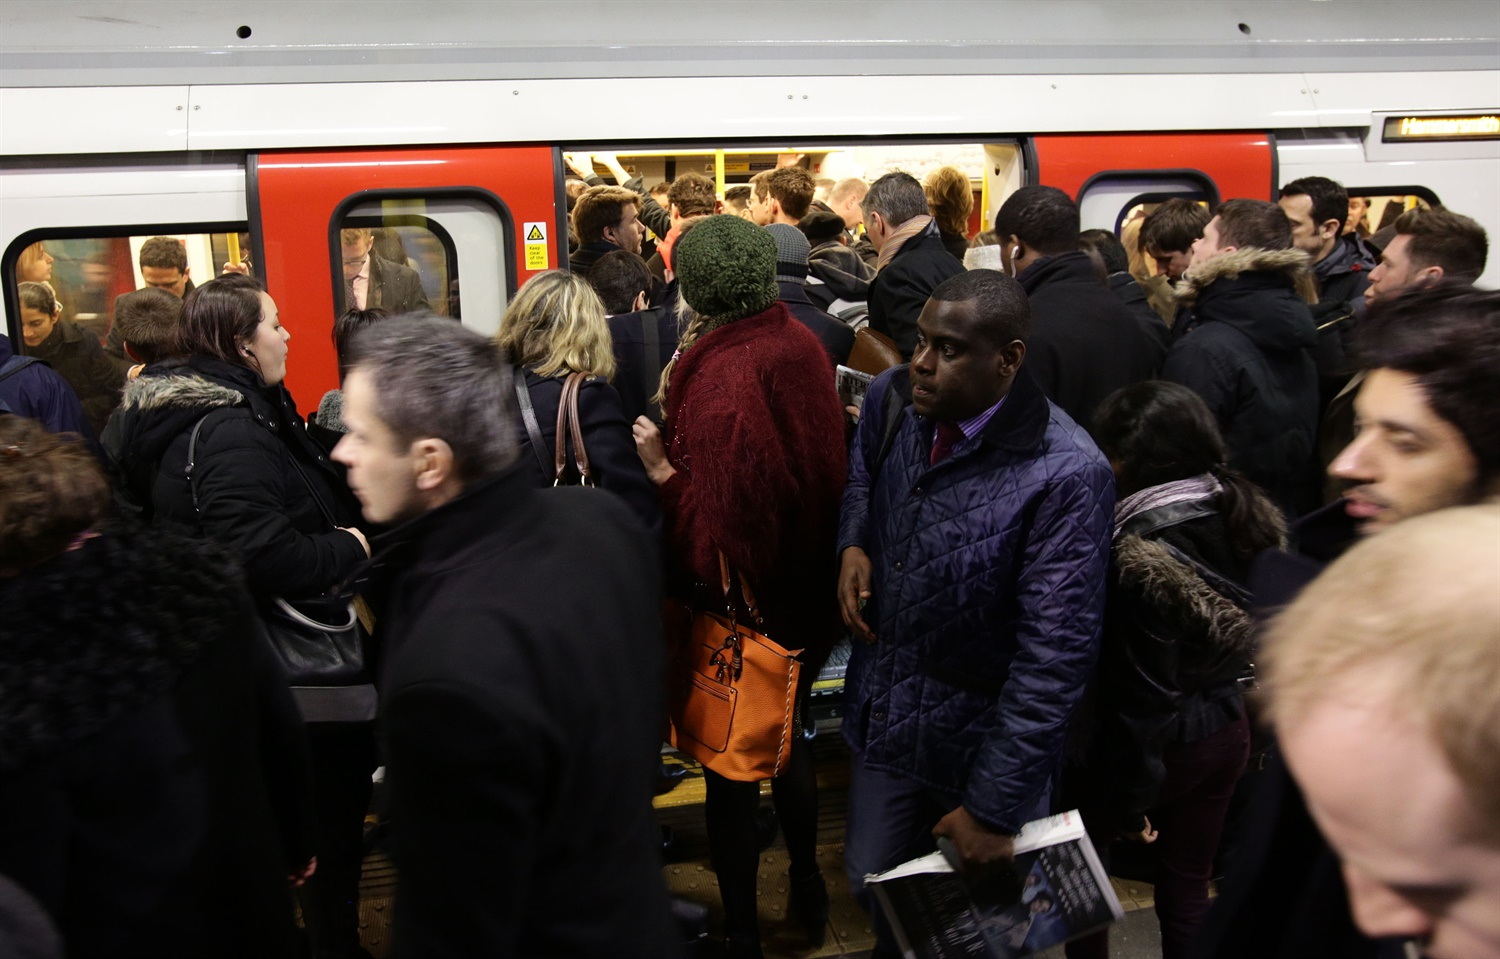 'Use retired workers to bust Tube strike' – GLA Conservatives